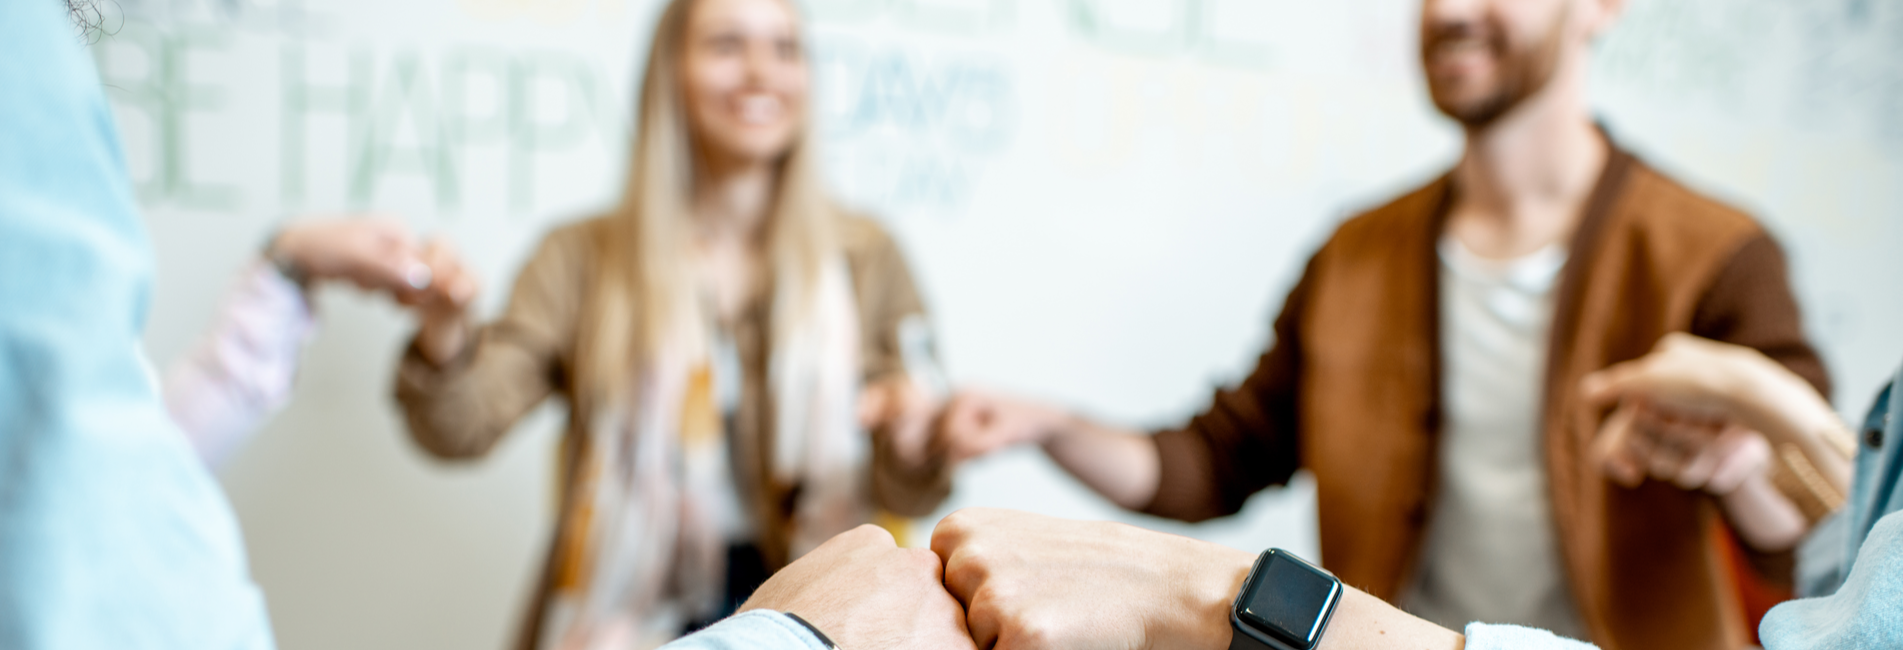 12 Step Addiction Treatment in California - Resurgence - A group of individuals attending a 12 Step addiction treatment in California meeting is holding hands to offer support to one another during their recovery journeys.